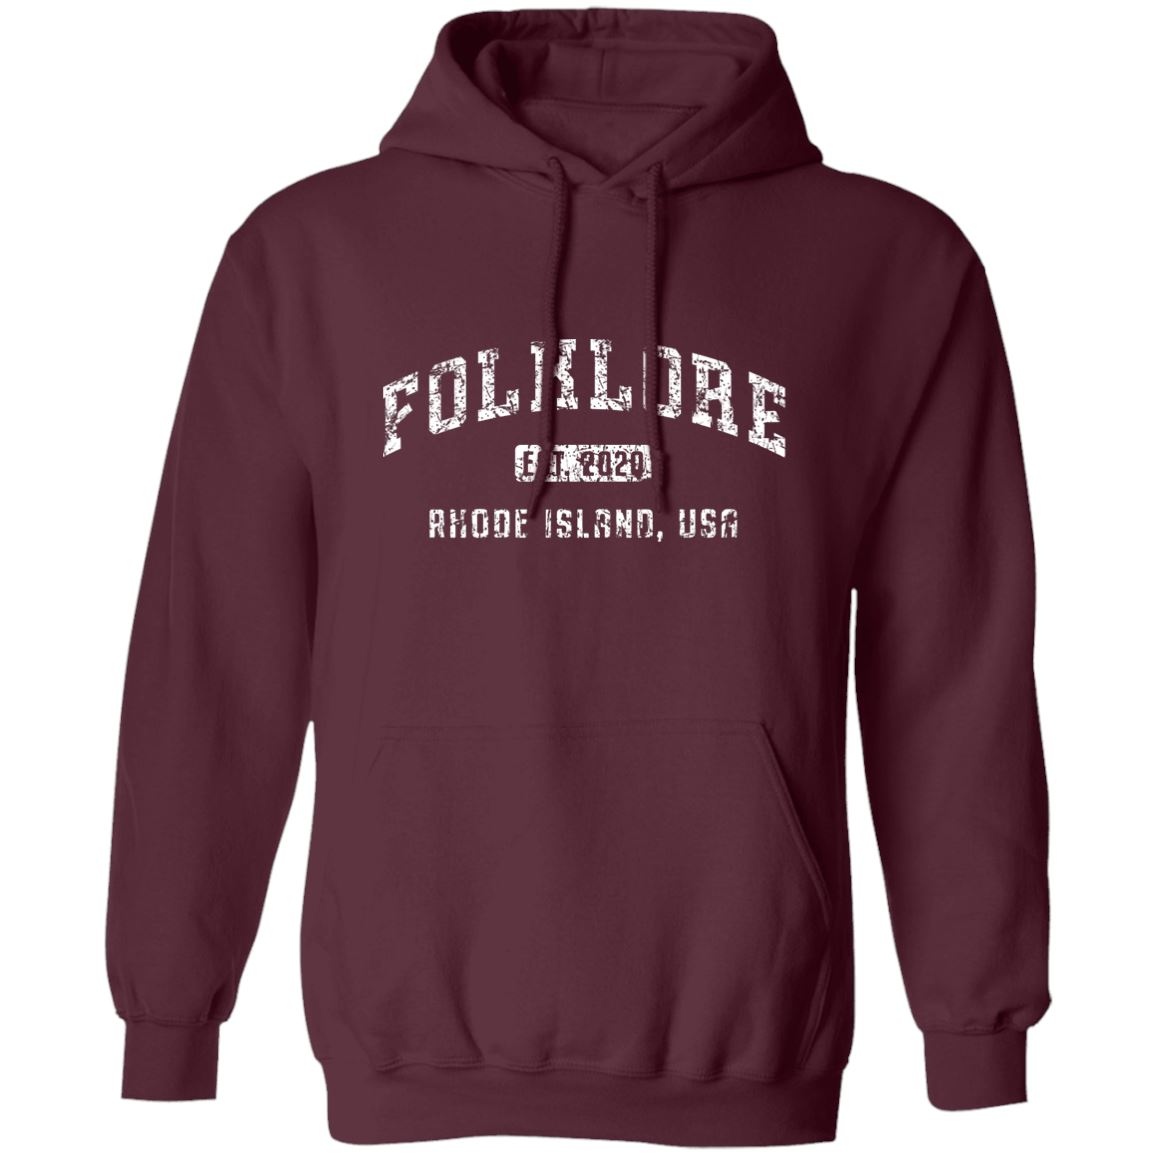 Folklore Album Sweatshirt • Taylor Swift Hoodie Sweatshirts CustomCat Maroon S